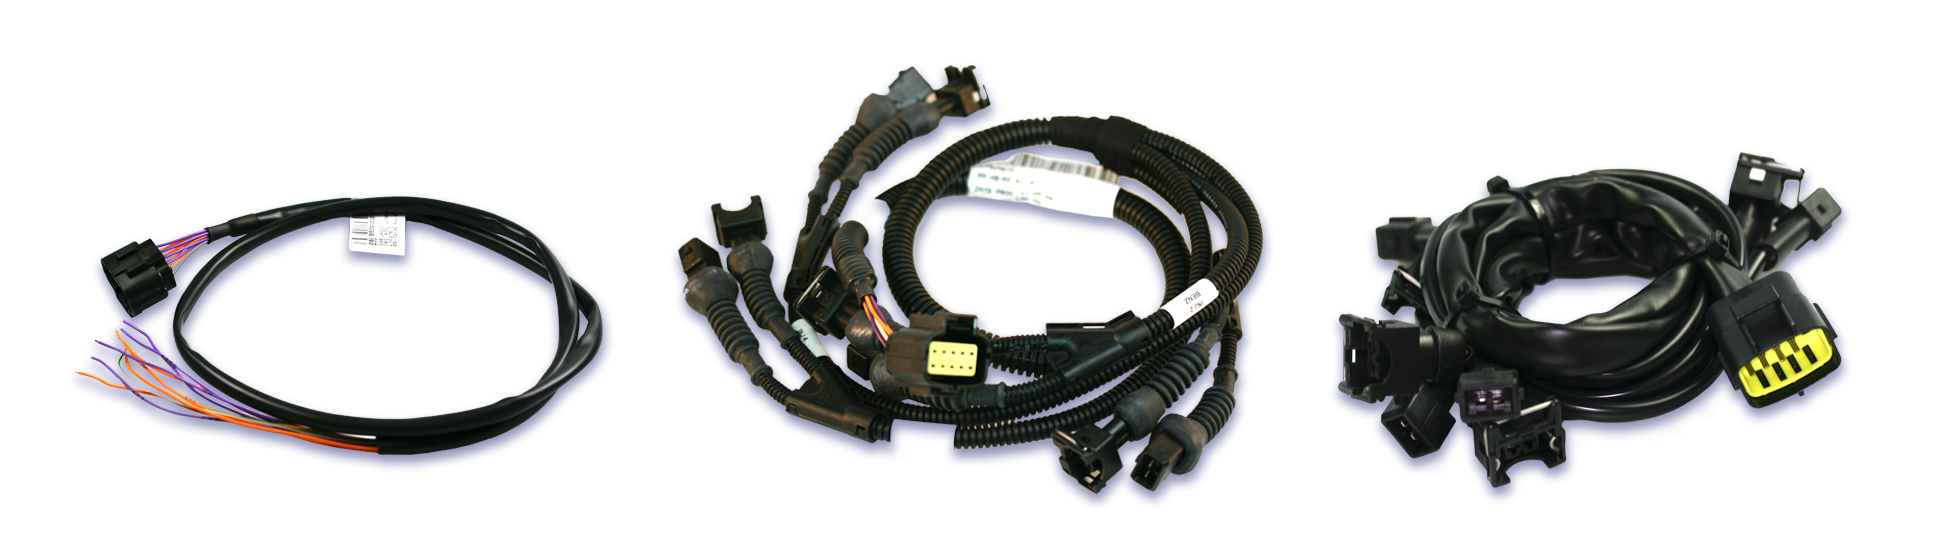 Injector cut-off cables